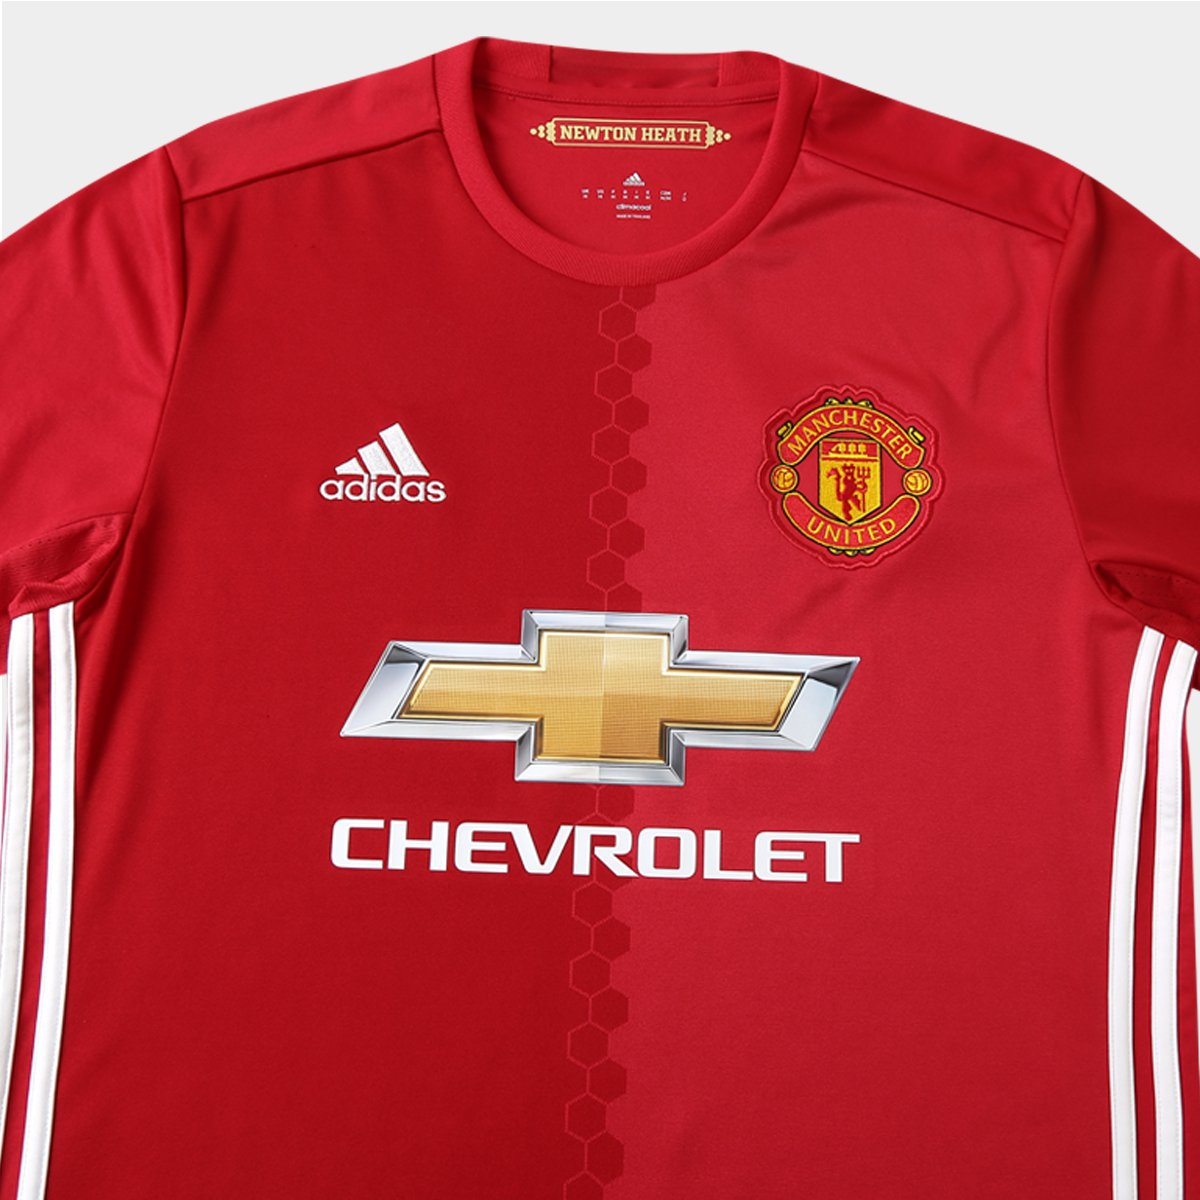 a322bb5838 Camisa Manchester United Home 16 17 s nº Torcedor Adidas Masculina ...